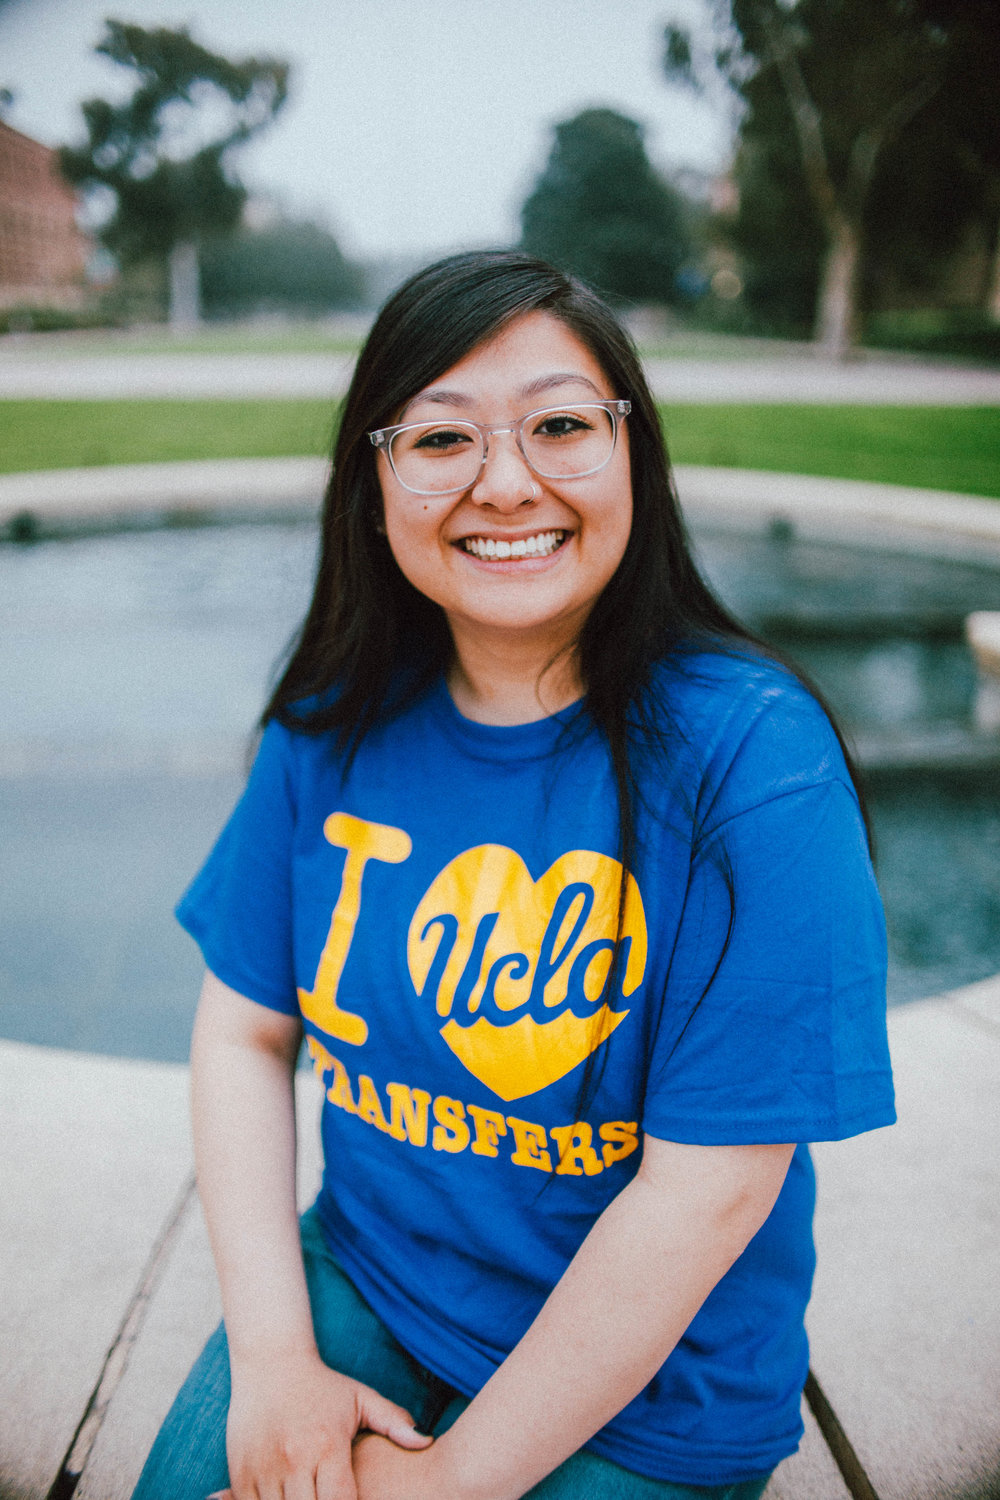 Jessica Kim - Member, Transfer Leadership CoalitionStaff Member, UC Affordability and Westwood Forward Committees, USAC Office of the PresidentCommunity Organizer, LA City Hall Gang Reduction and Youth Development ProgramFellow, Santa Monica Democratic Club